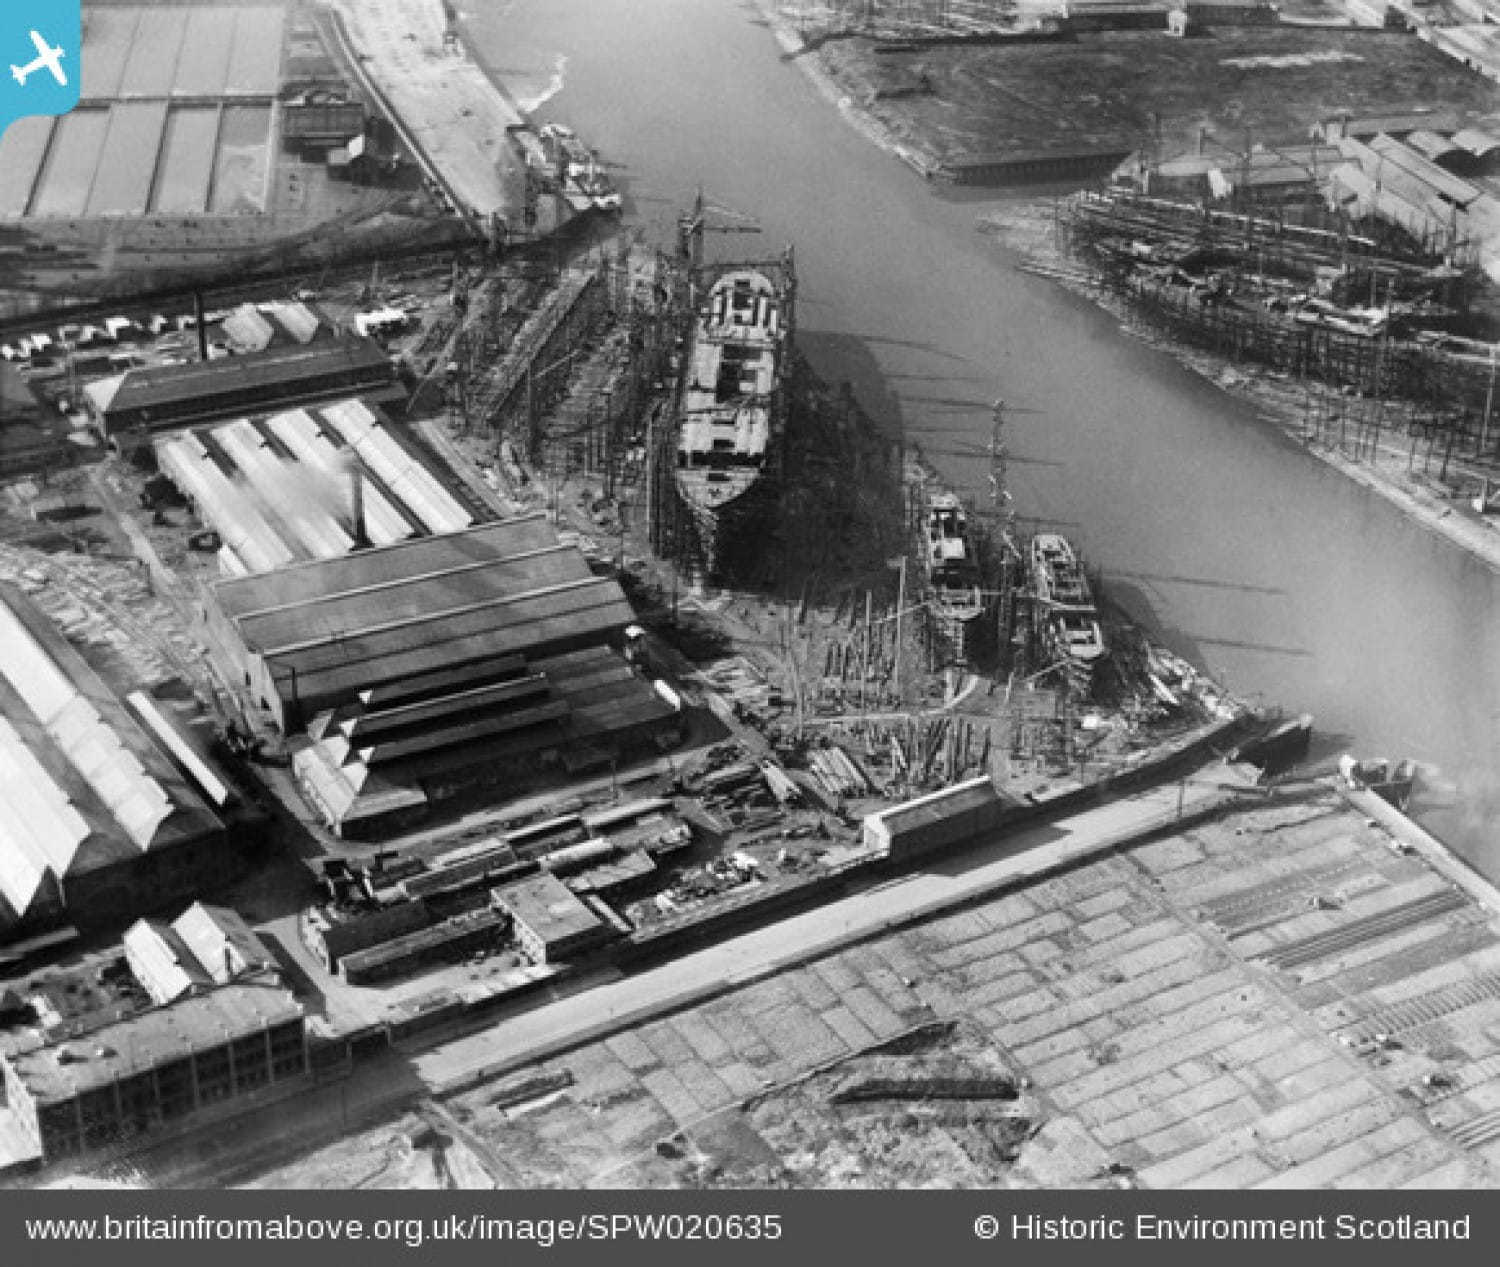 Picture showing a bustling Clyde shipbuilding industry taken in 1928. Pic: britainfromabove.org.uk